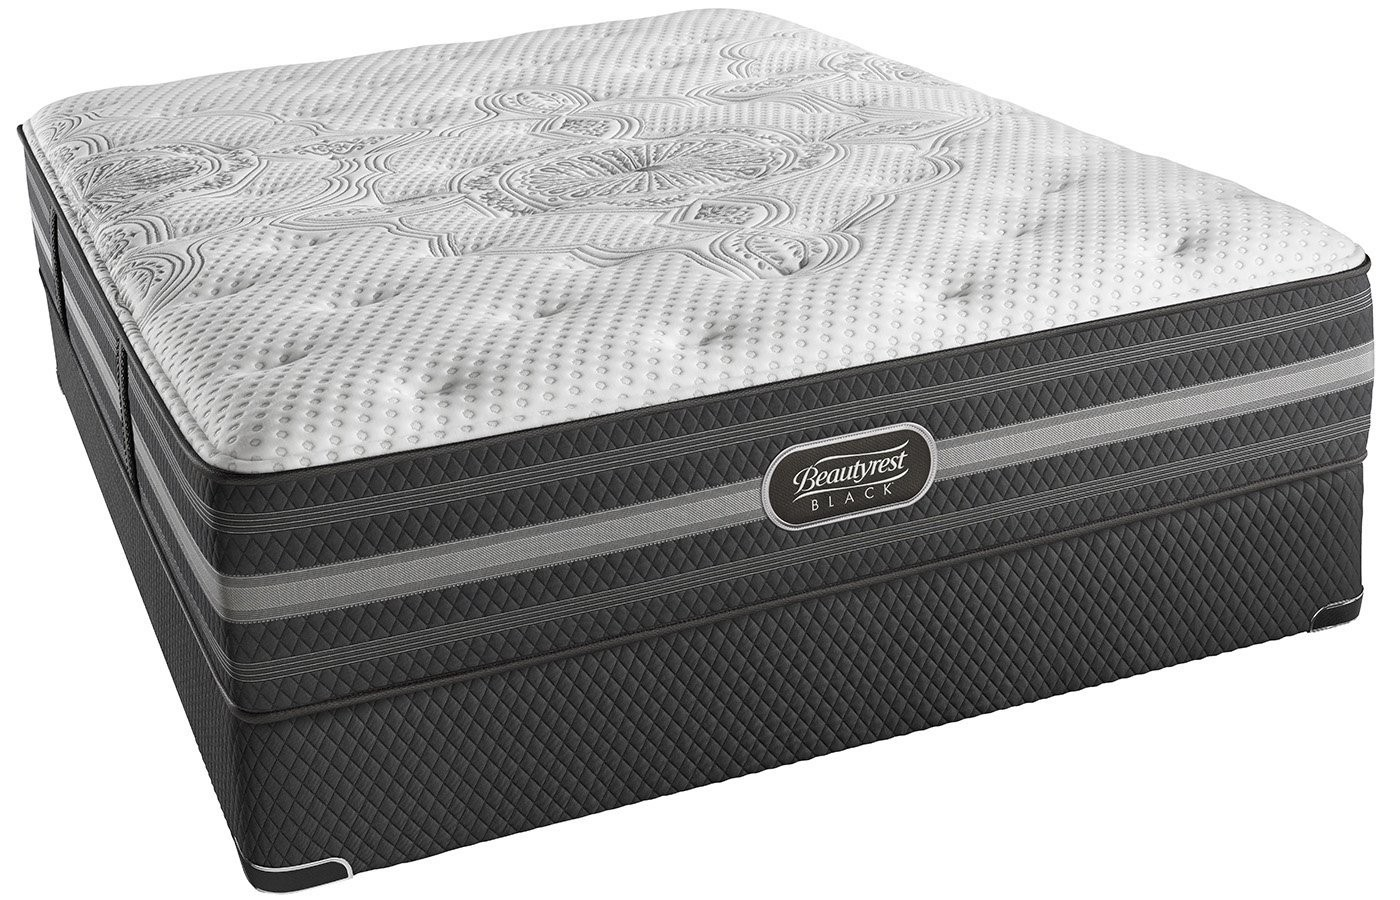 Beautyrest Black Desiree Luxury Firm Mattress Set